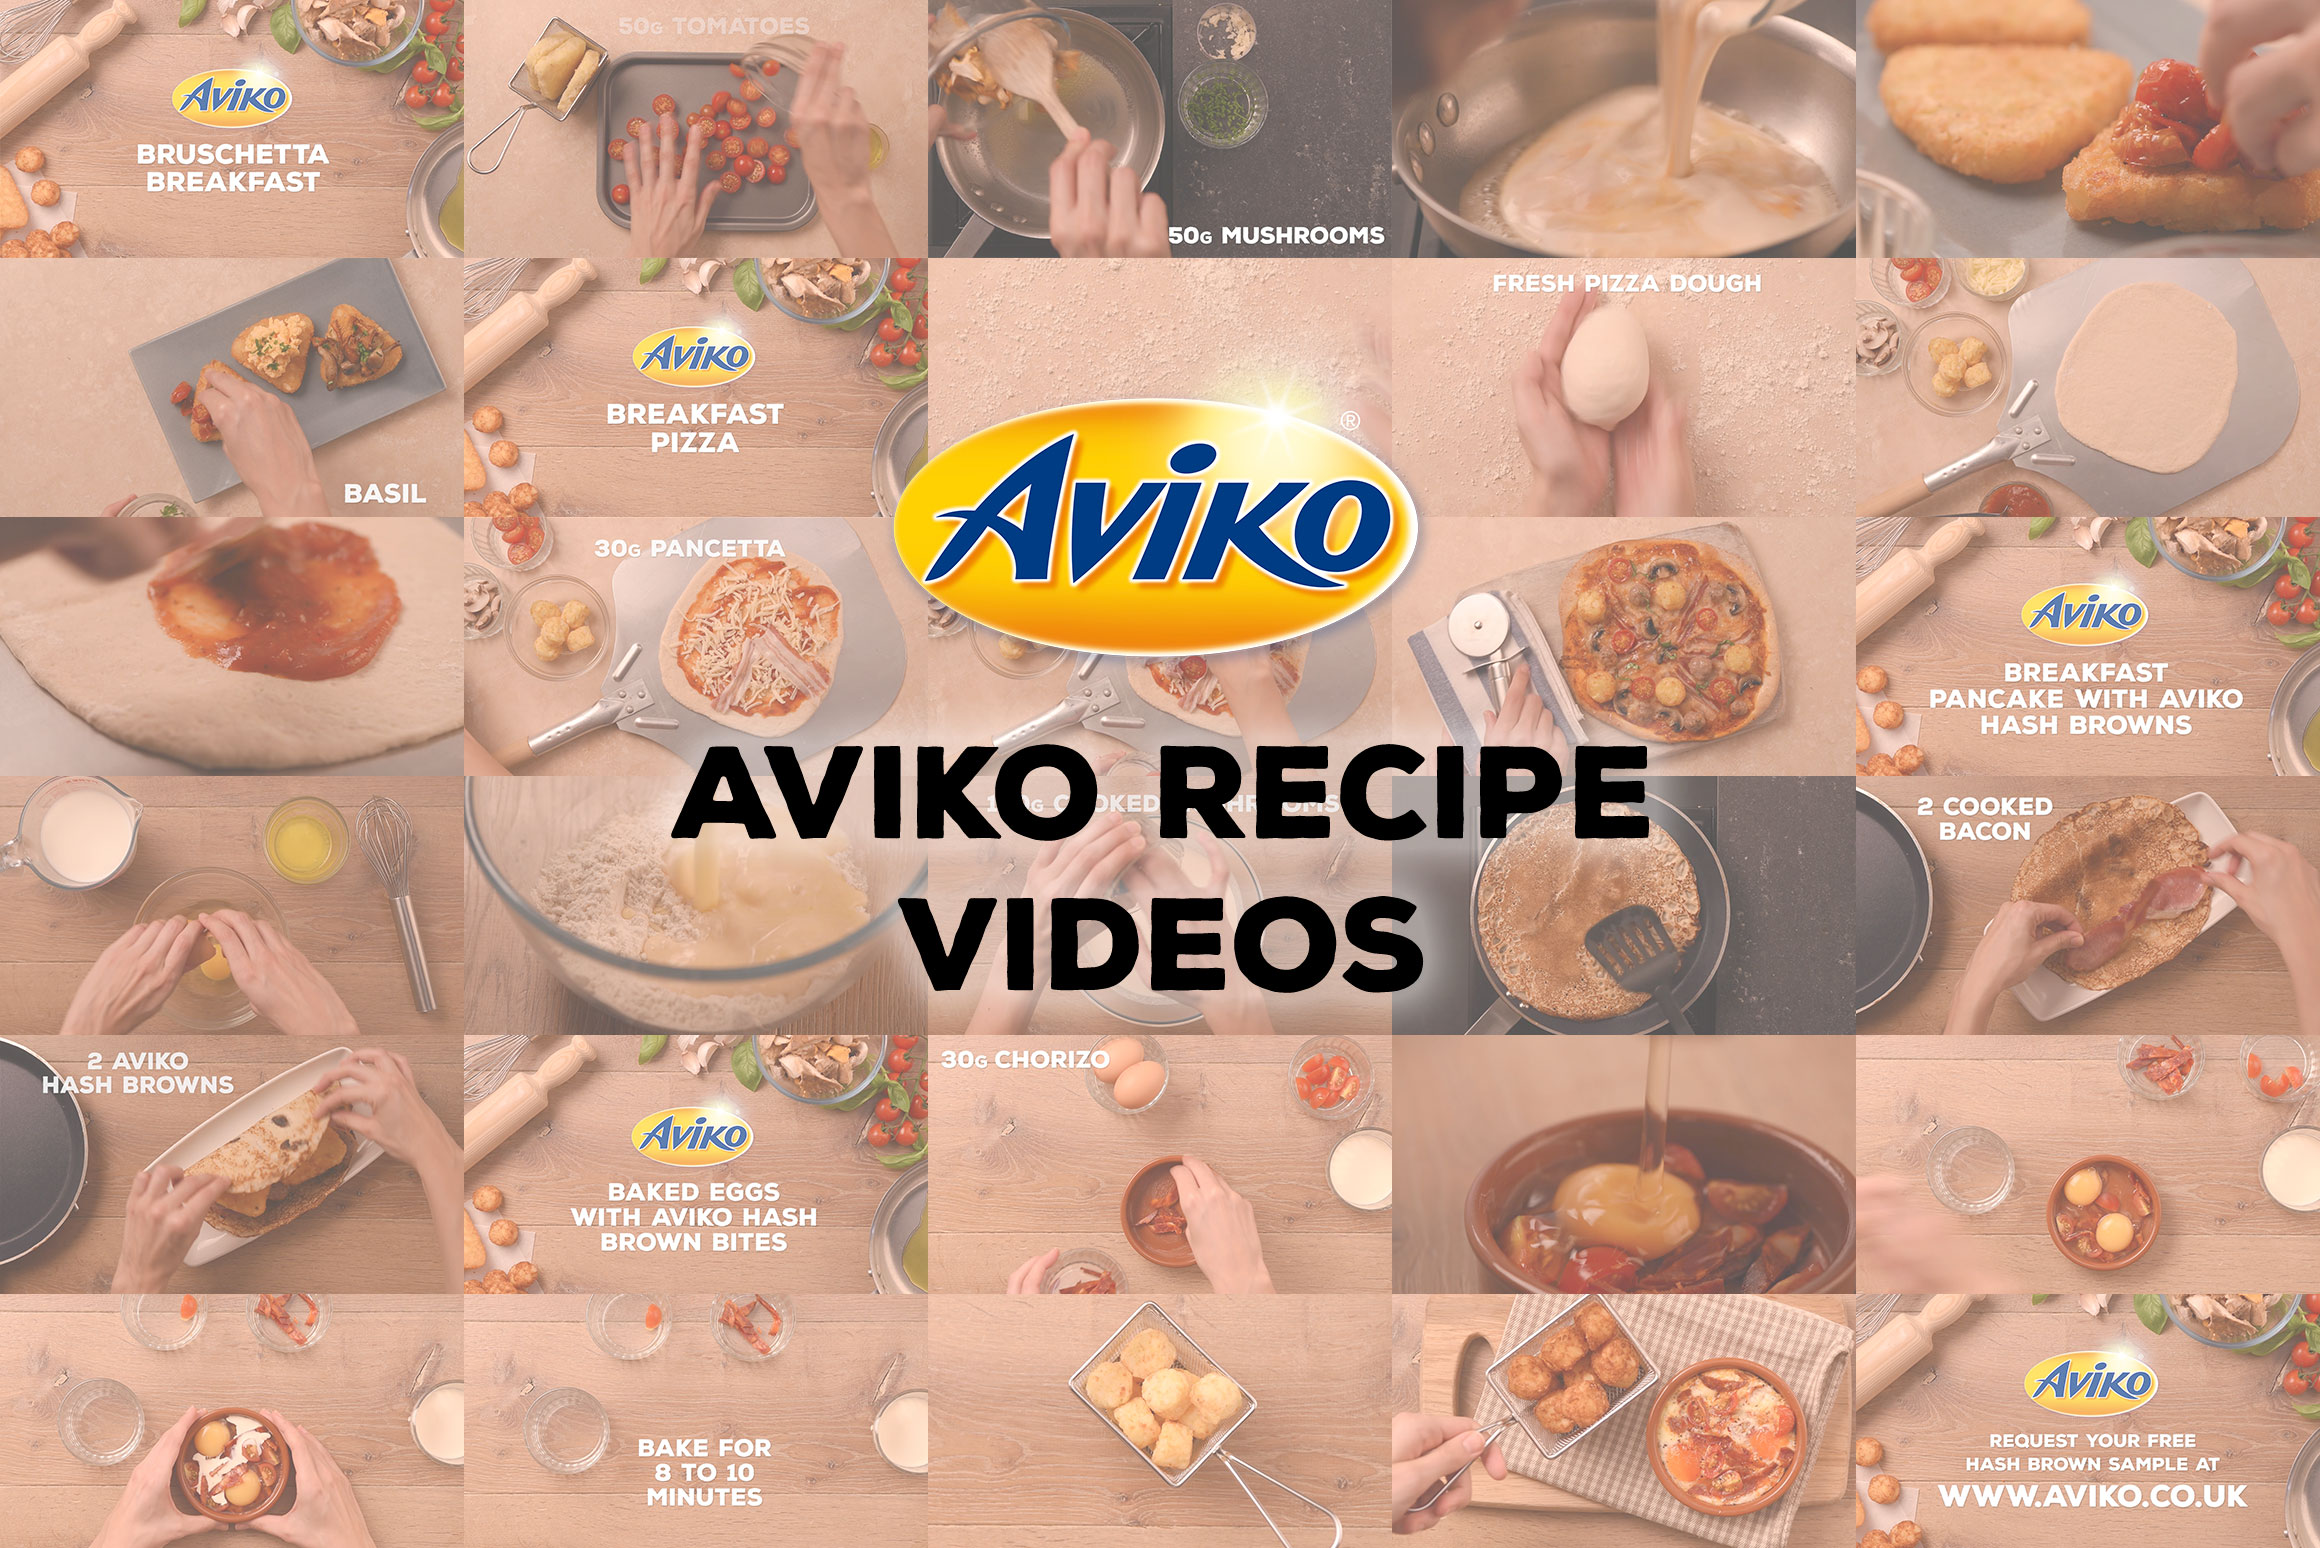 Aviko Recipe Videos - Foodservice Marketing Agency - Jellybean Creative Solutions